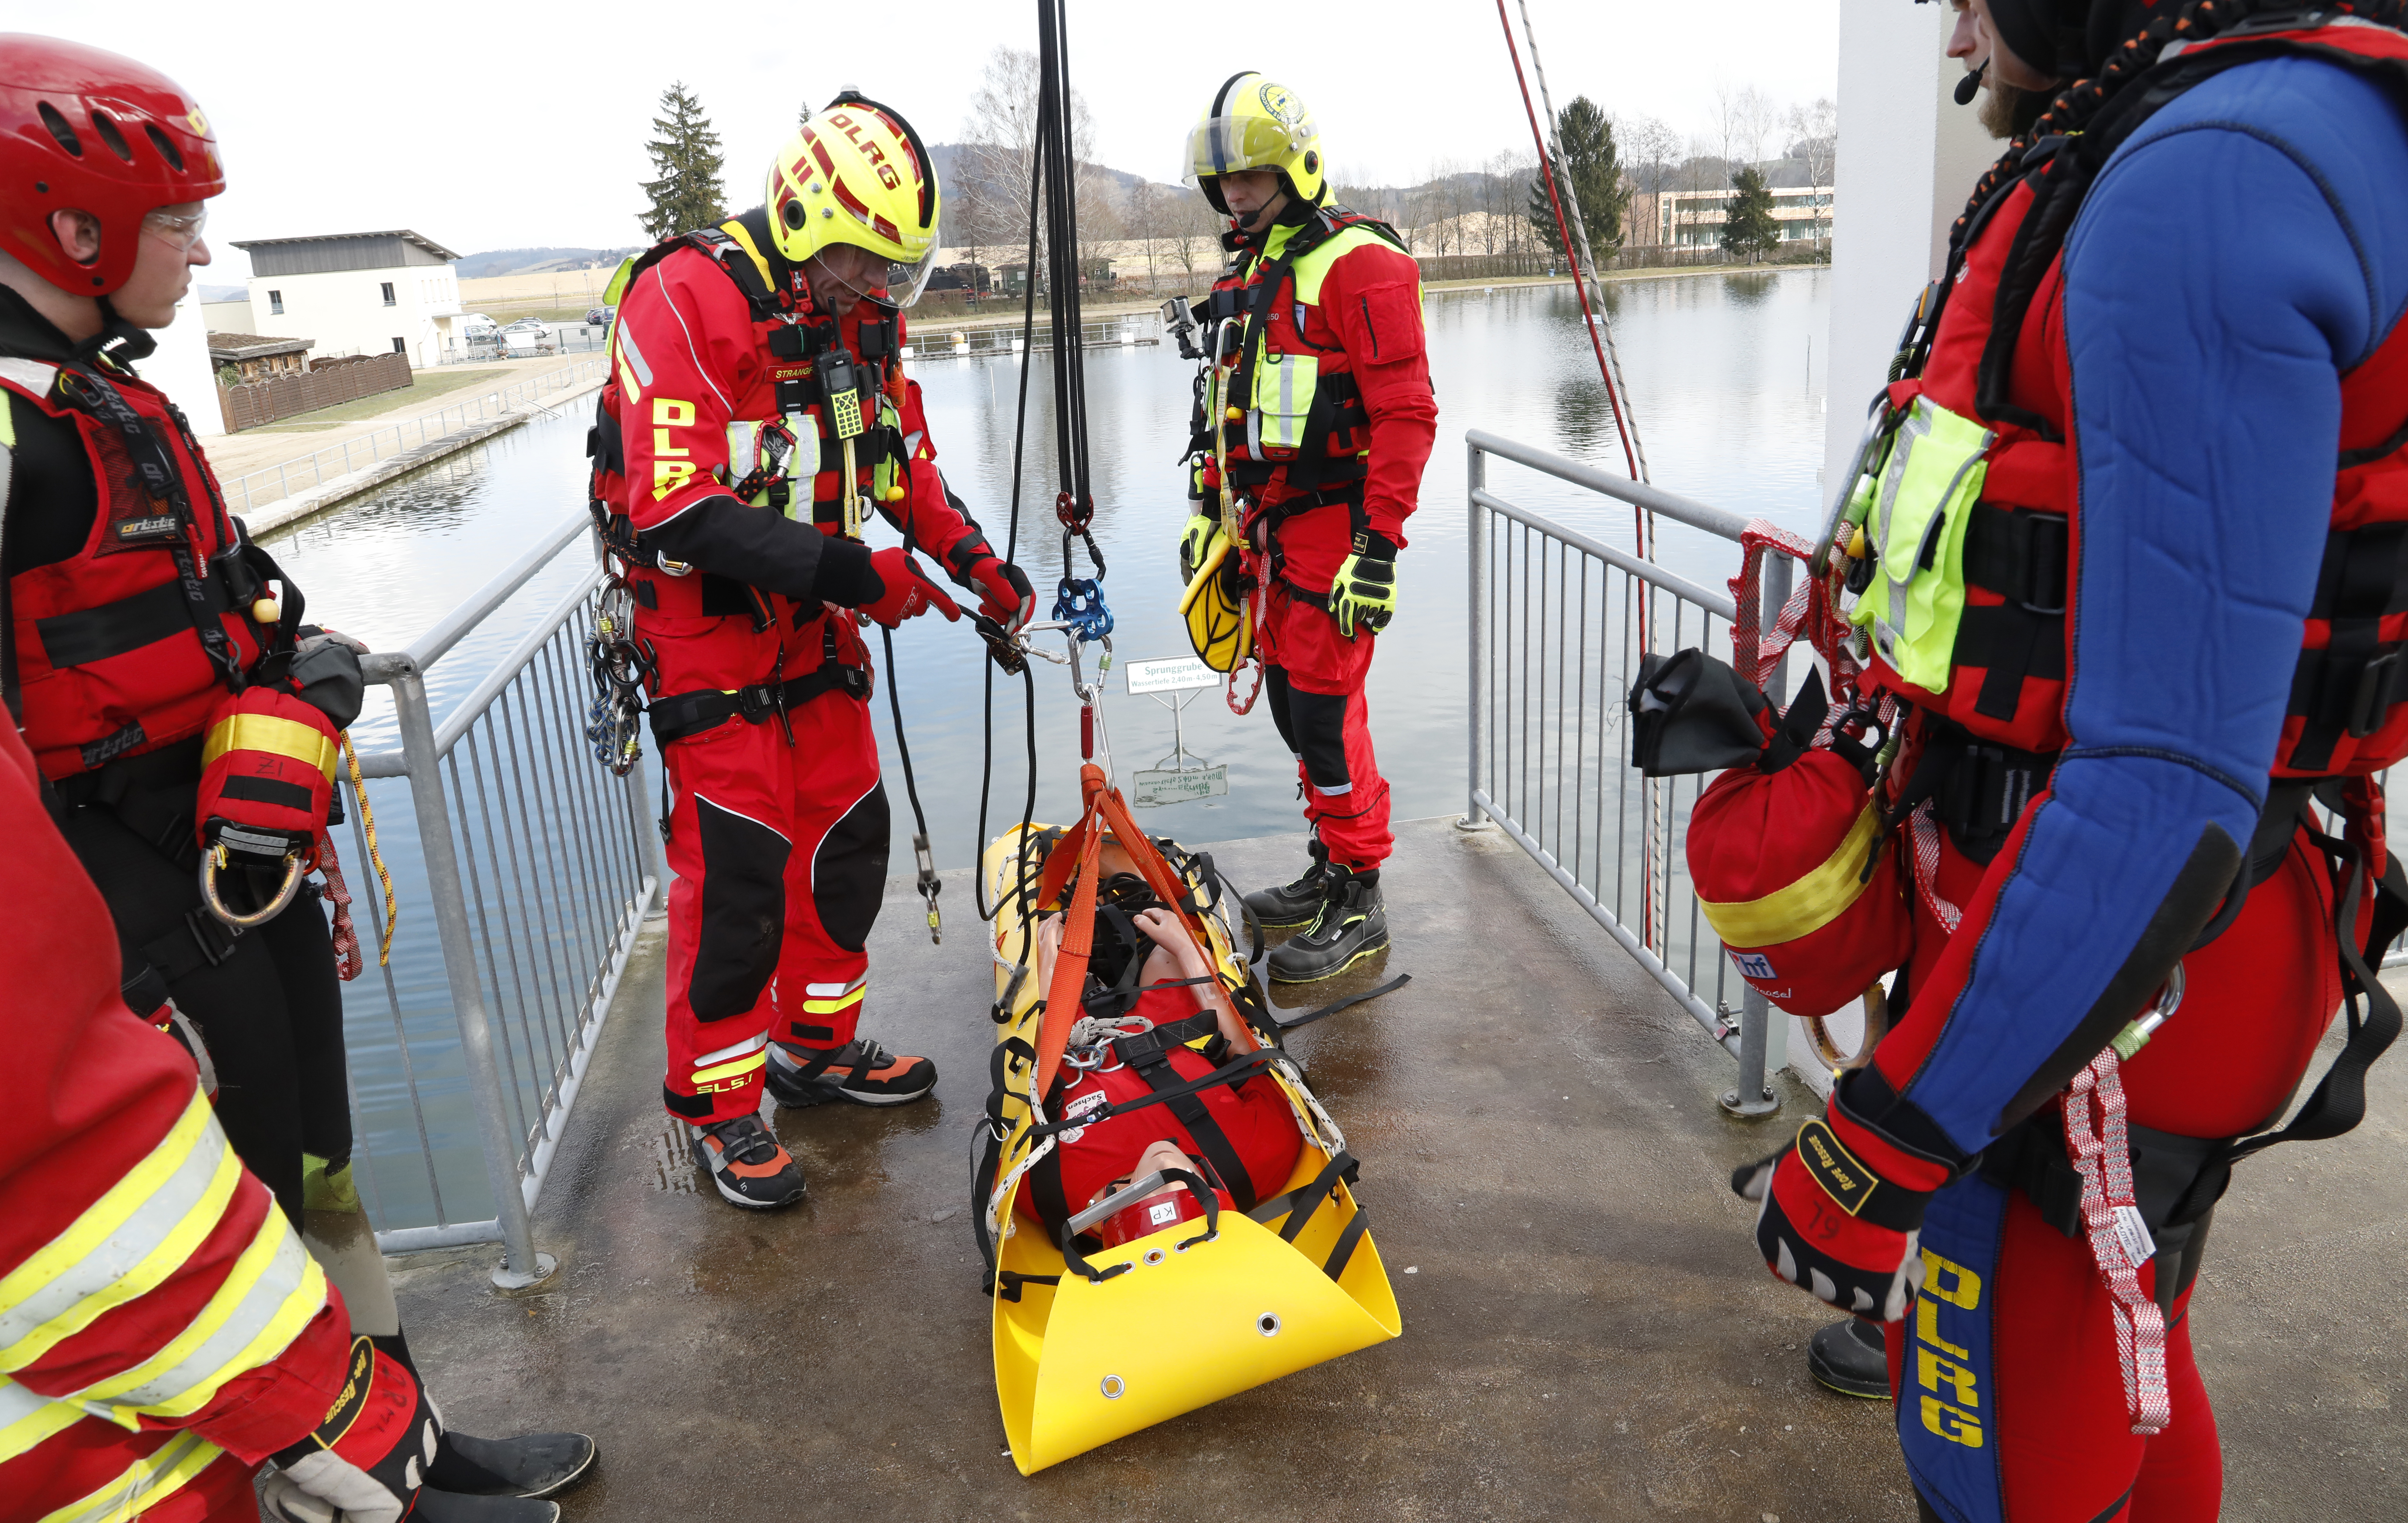 Emergency Live | The emergence of the HRS - Surf Life Rescue: water rescue and safety image 29